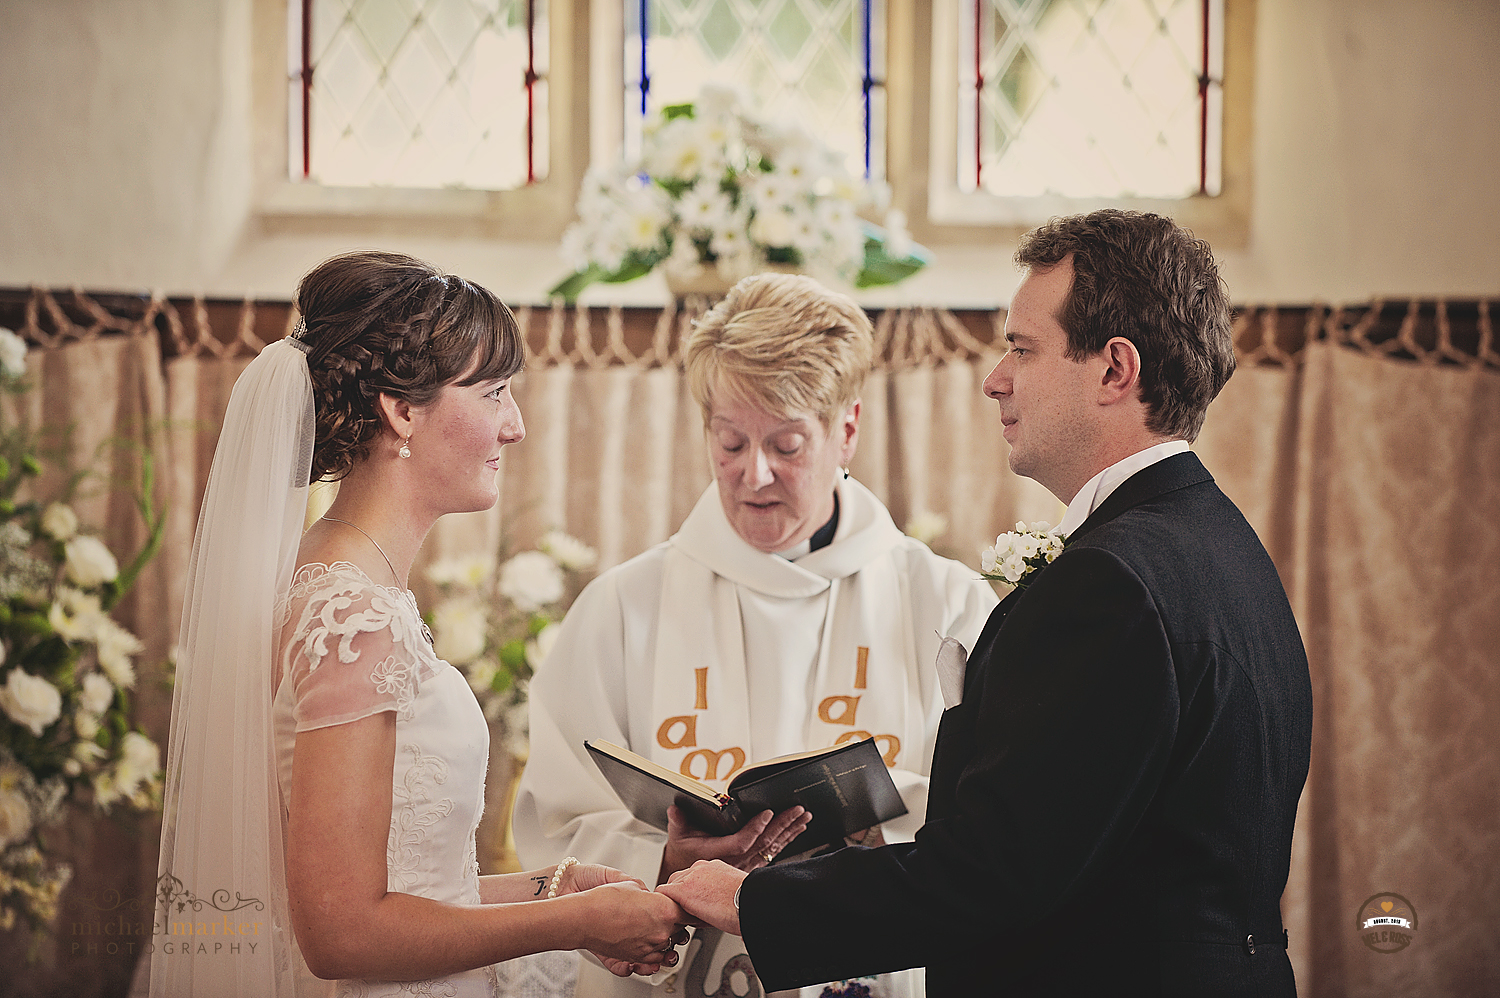 Exchaning wedding vows at Devon chapel wedding